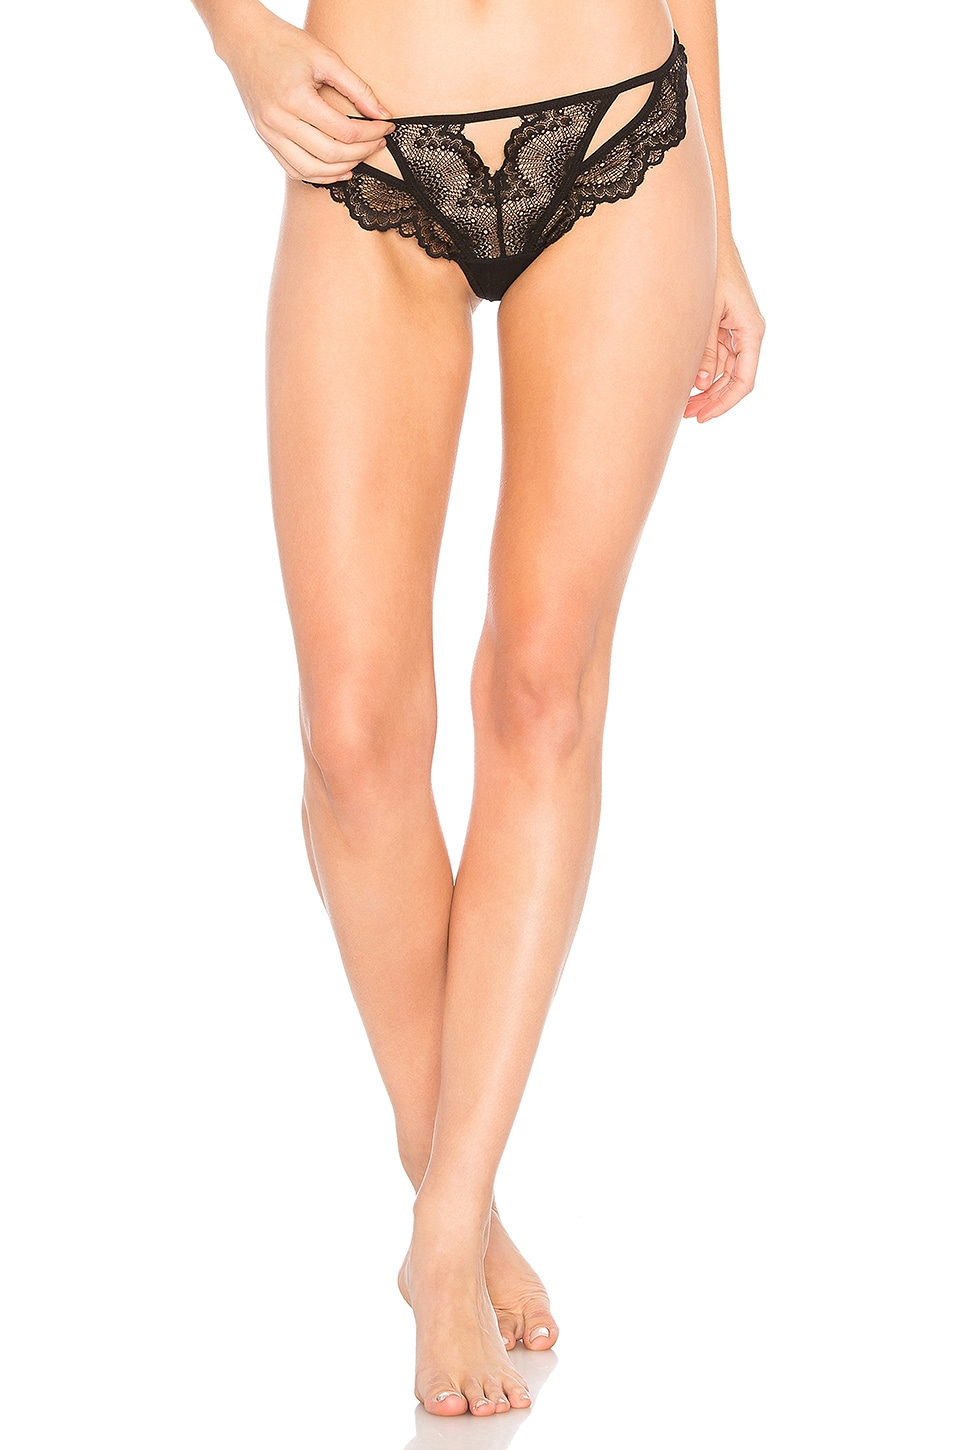 Thistle & Spire Kane Thong in Black